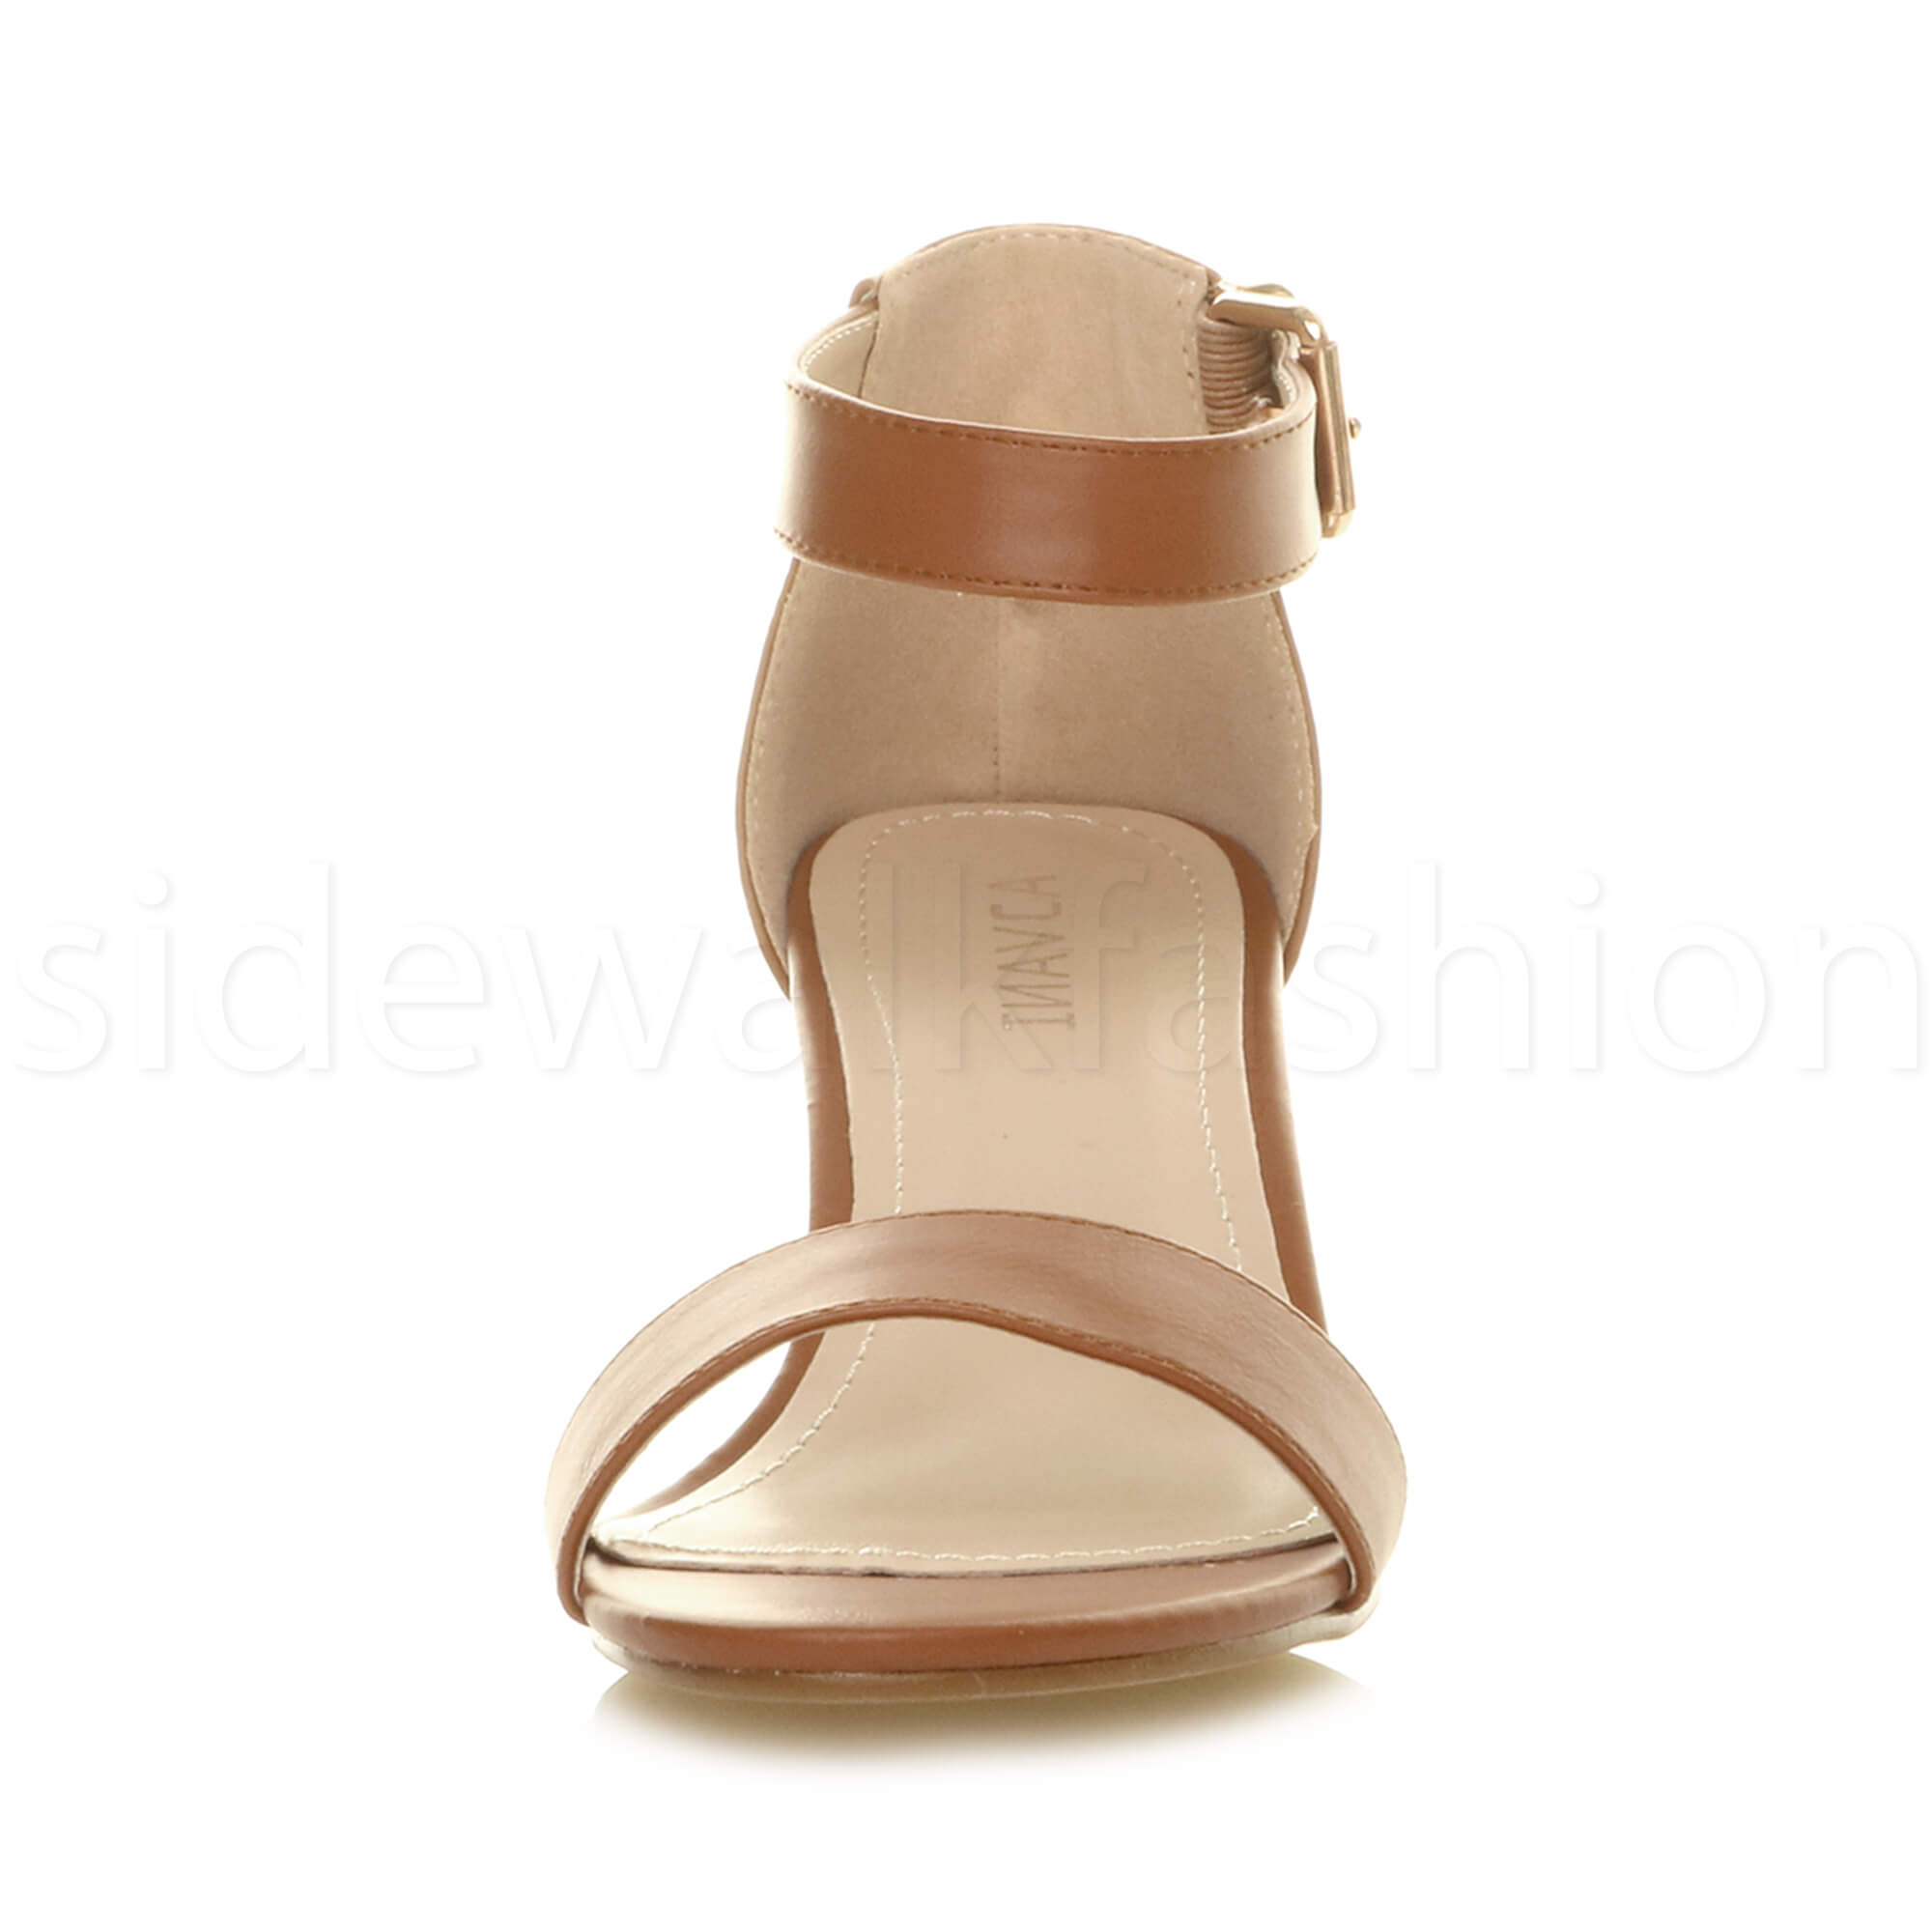 Womens-ladies-low-mid-heel-buckle-ankle-strap-peep-toe-party-strappy-sandal-size thumbnail 144